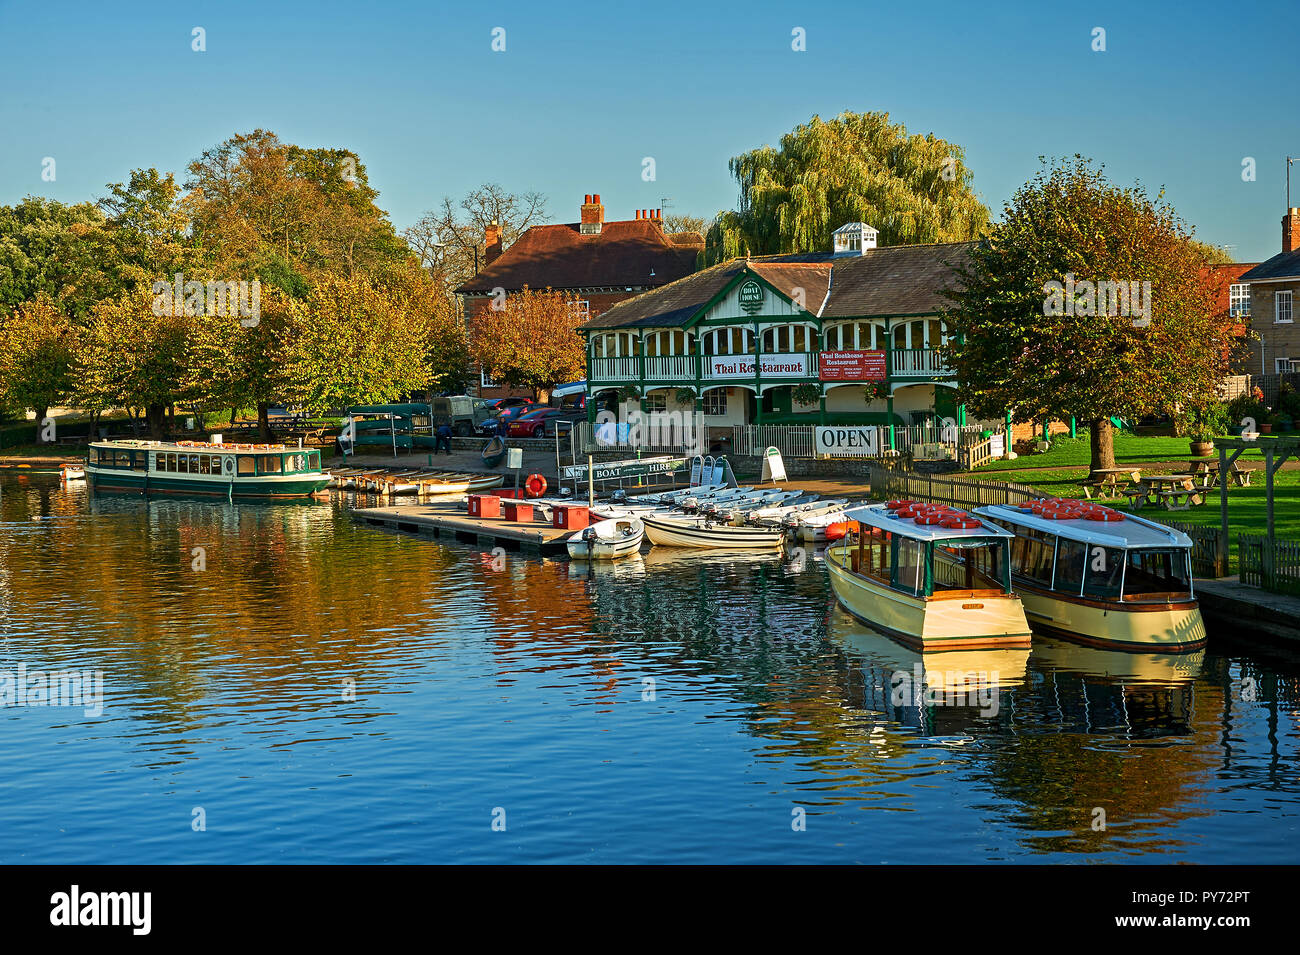 Stratford upon Avon and the old boat house on the River Avon on an autumn afternoon, with pleasure boats  moored at the end of the season - Stock Image